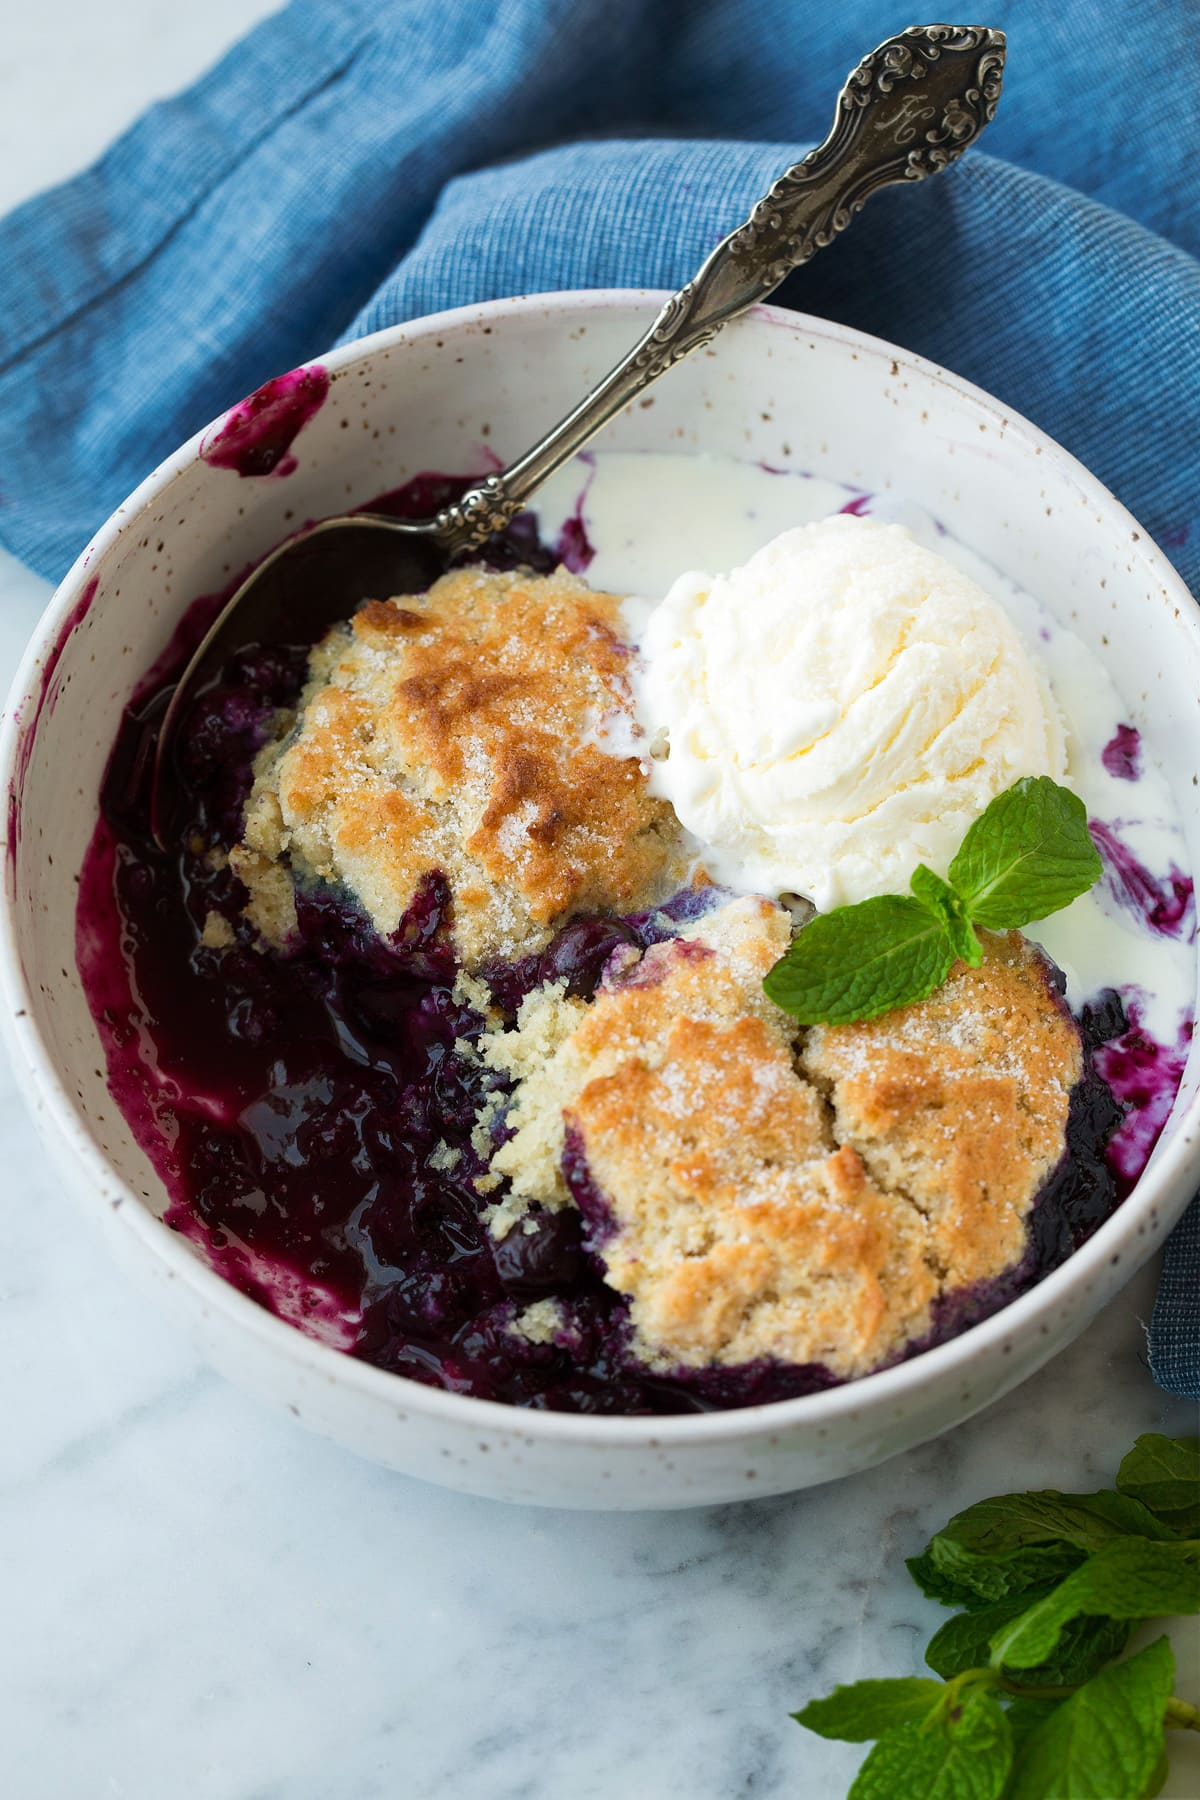 serving of Blueberry Cobbler topped with ice cream in white bowl